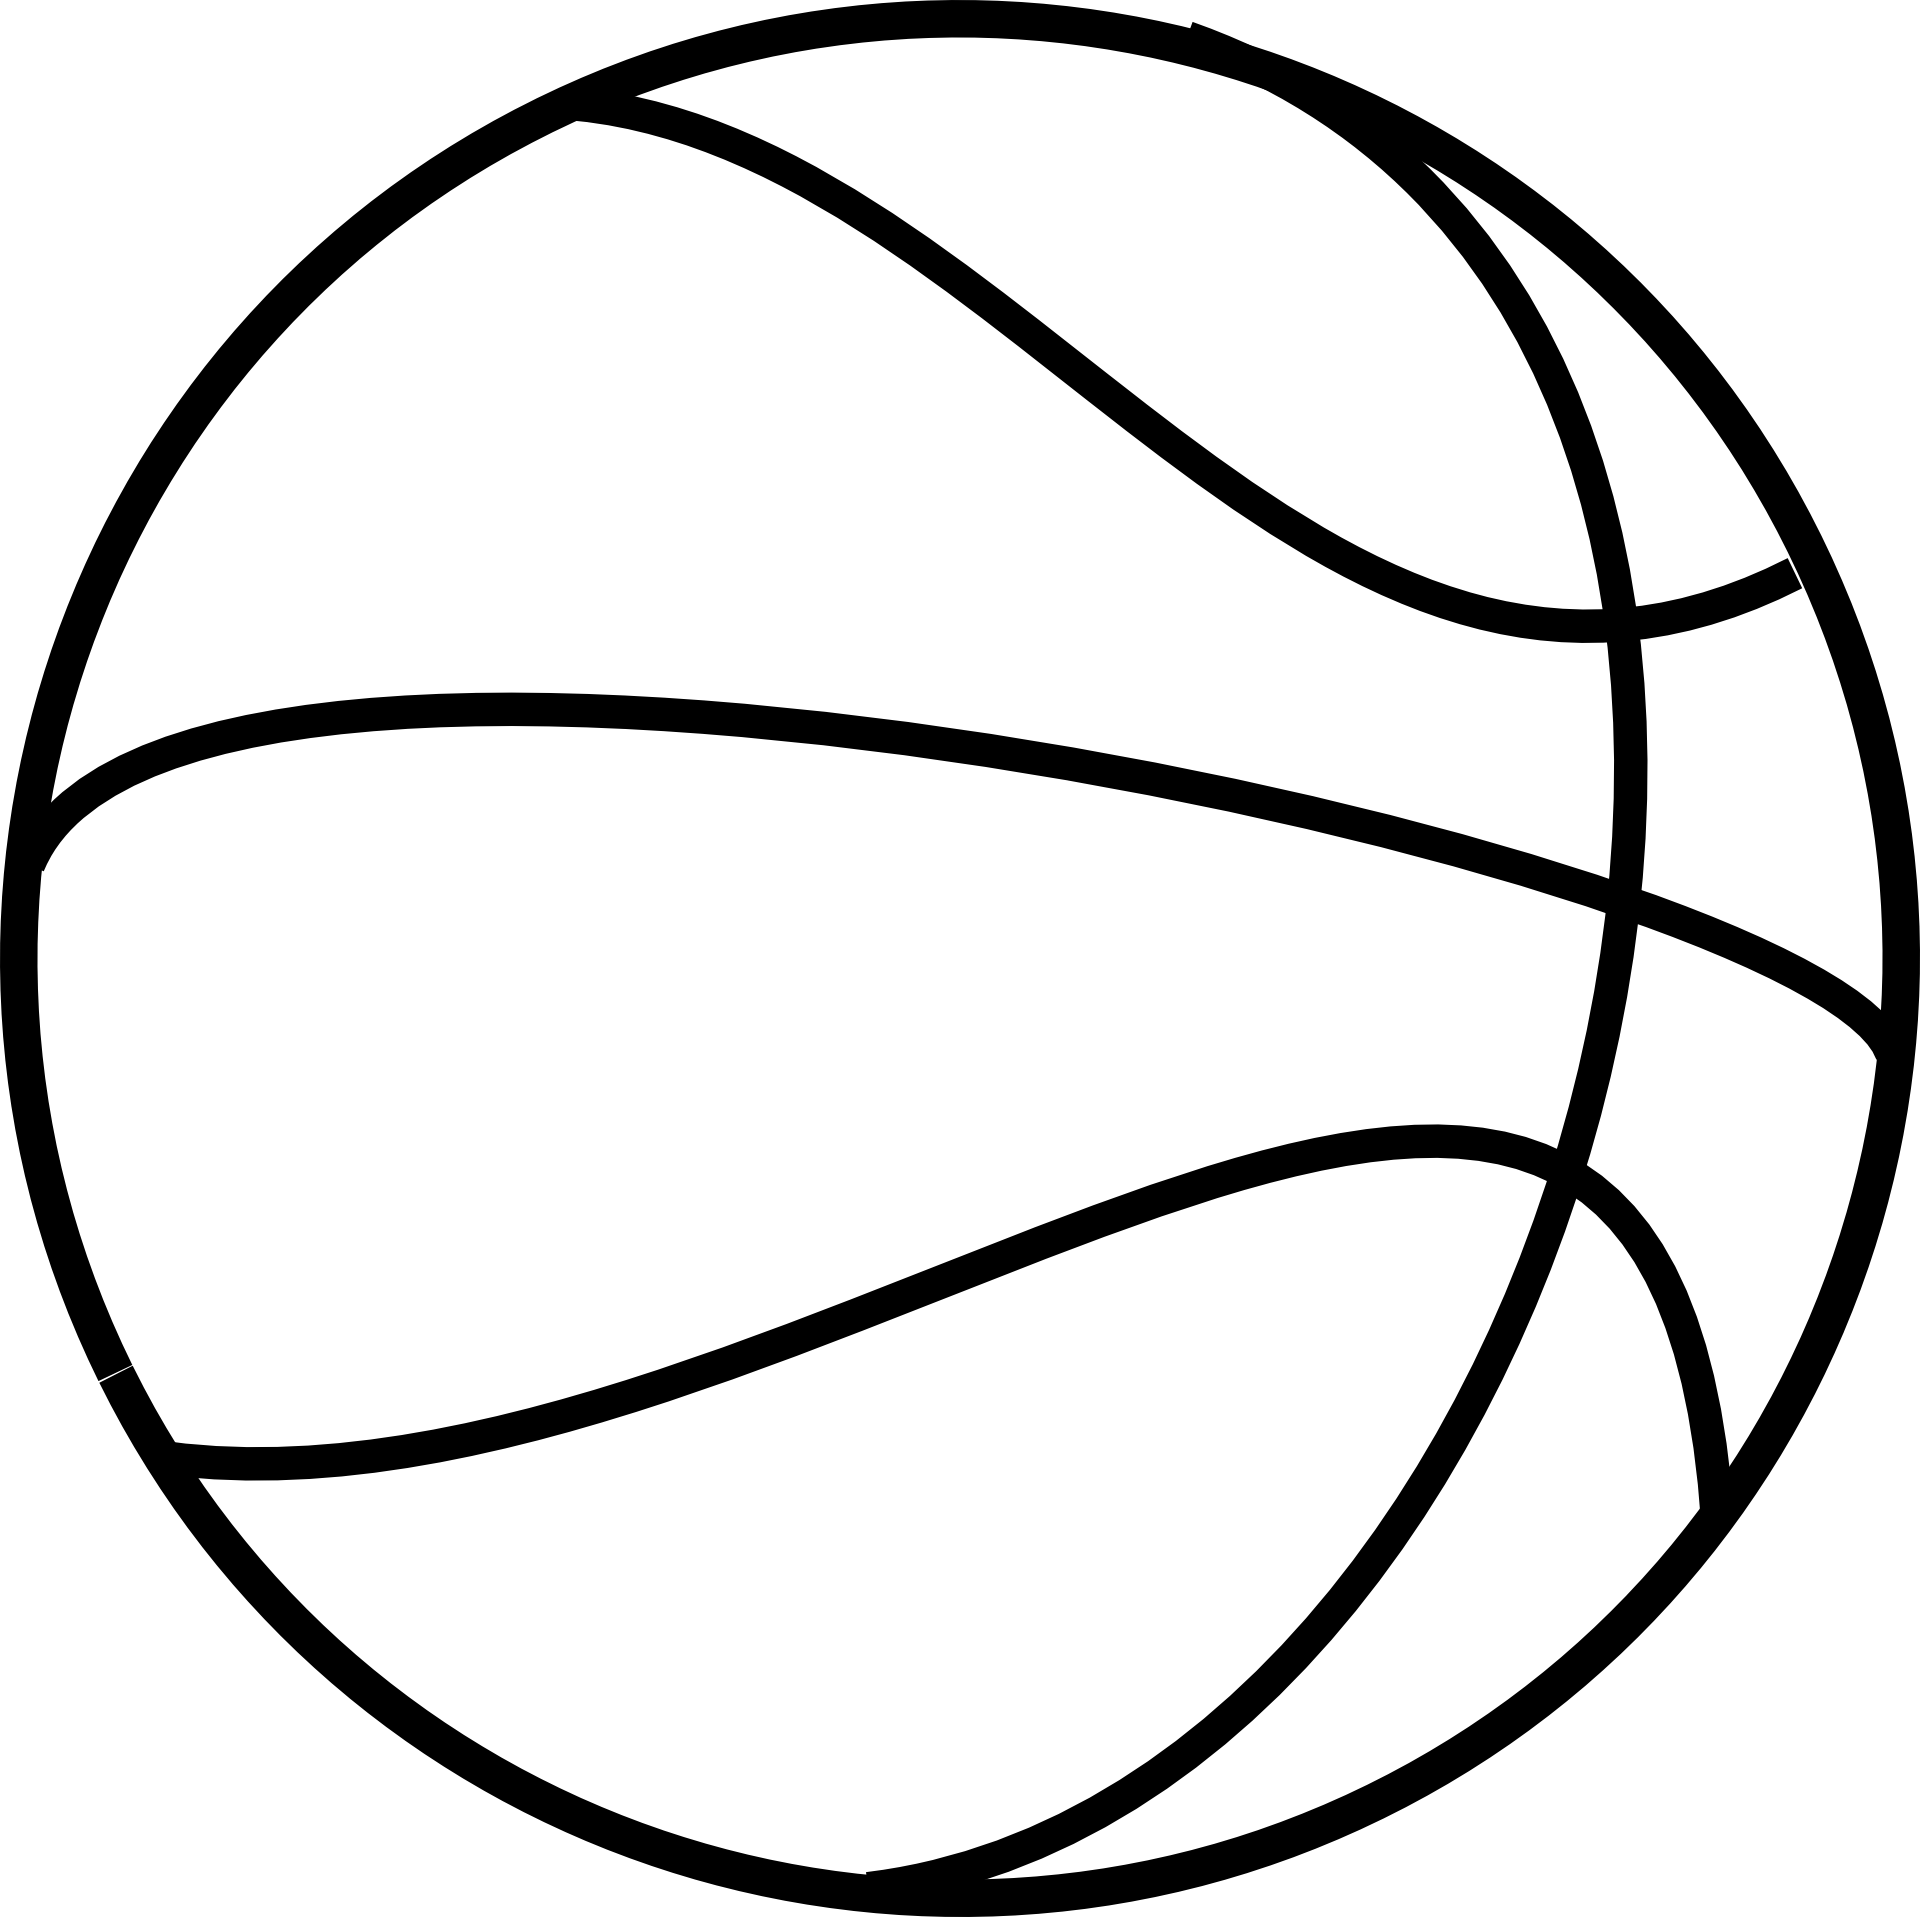 drawing of a basketball basketball goal drawing at getdrawings basketball hoop basketball drawing a of